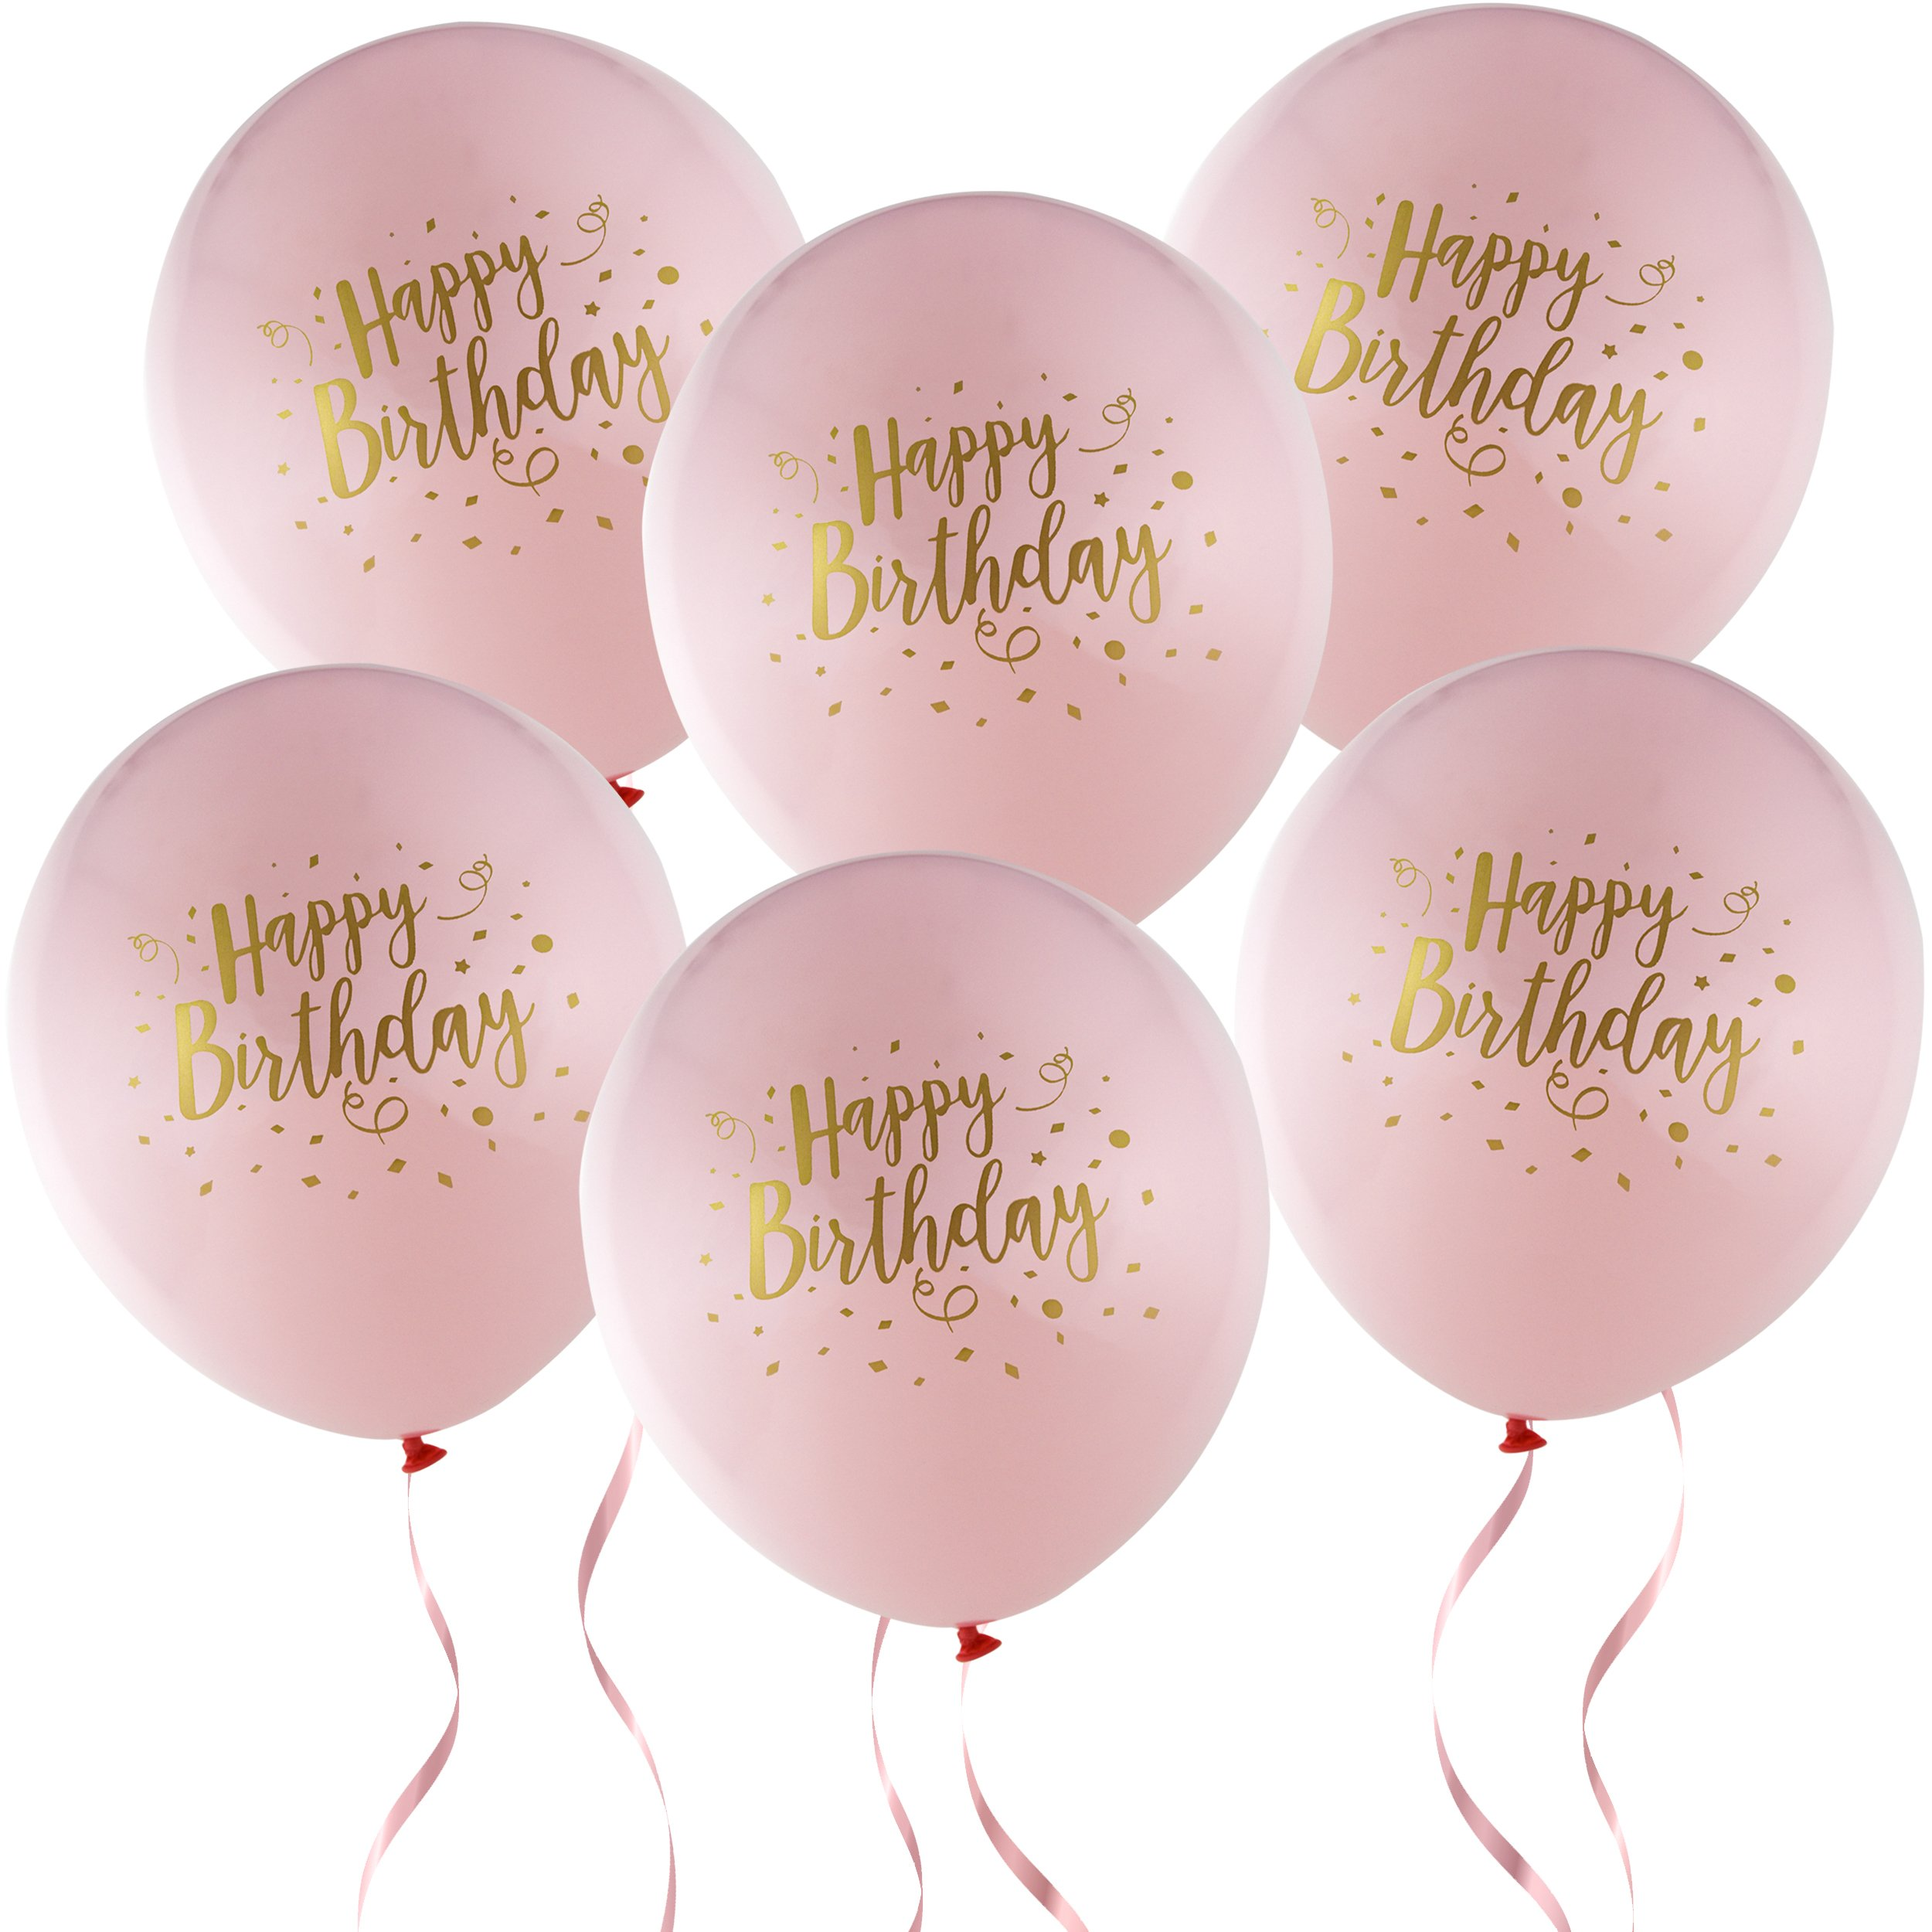 36 Happy Birthday Balloons Girl 12'' Latex Pink and Gold Decorations for Baby First Birthday Party Favor Supplies